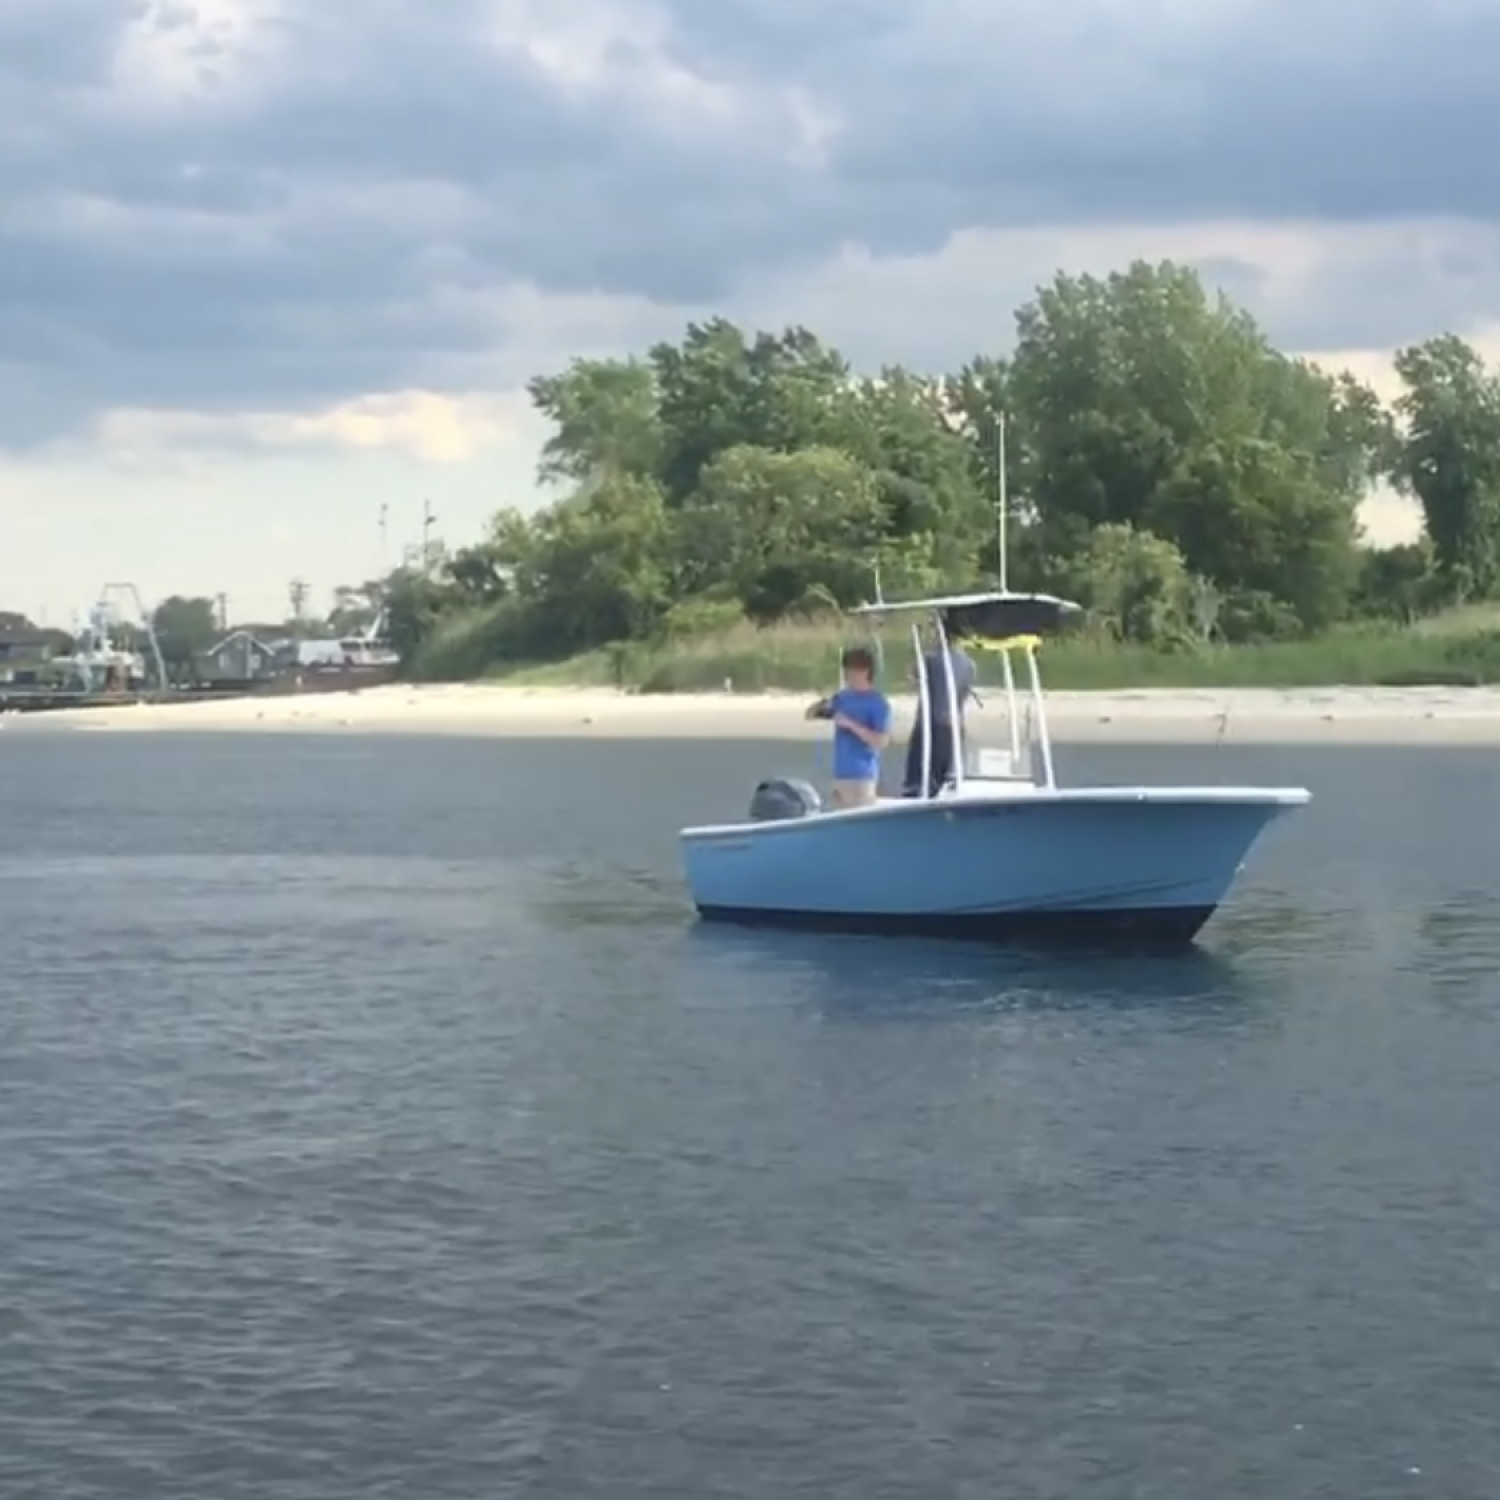 Title: Manasquan bluefish run - On board their Sportsman Island Reef 19 Center Console - Location: Manasquan. Participating in the Photo Contest #SportsmanOctober2018